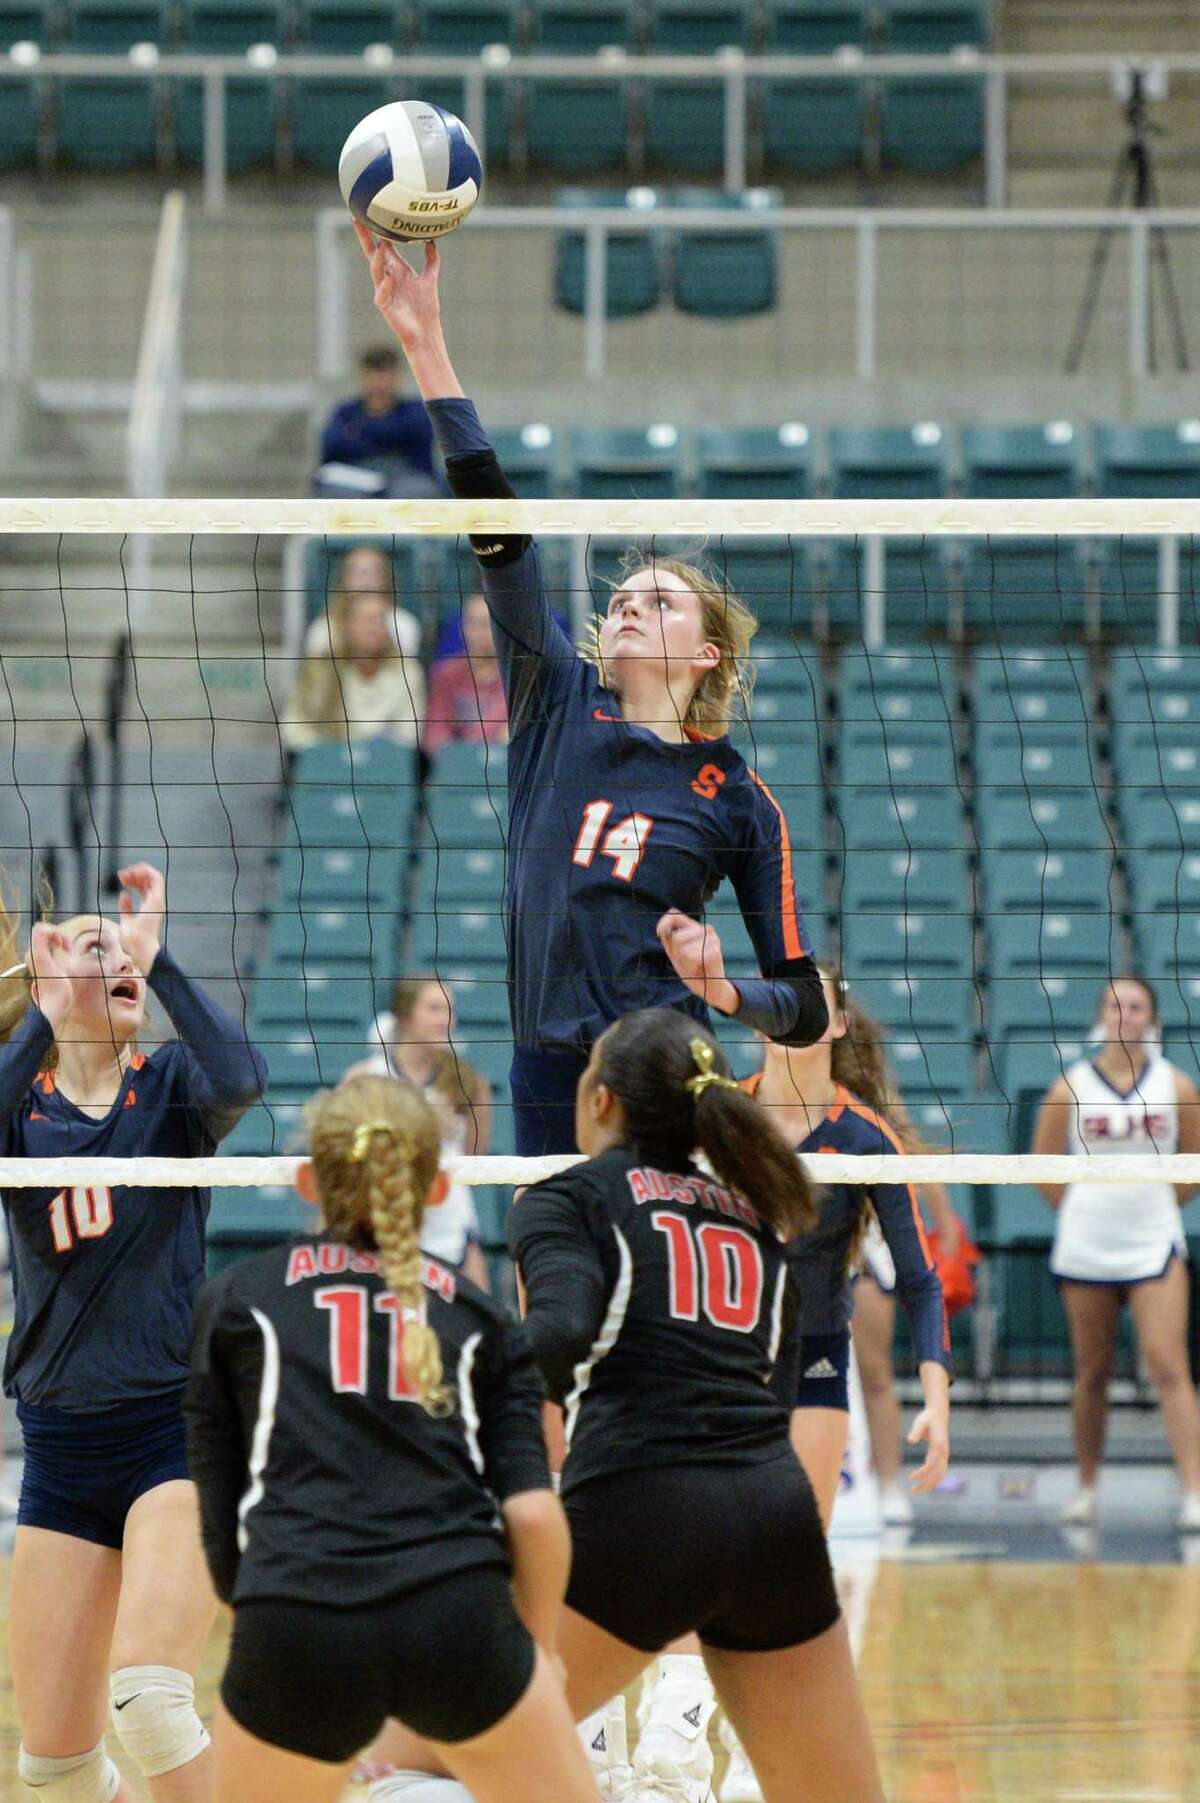 Ally Batenhorst (14) of Seven Lakes hits a shot during the second set of a Class 6A Region III bi-district volleyball playoff match between the Seven Lakes Spartans and the Ft. Bend Austin Bulldogs on Tuesday, November 5, 2019 at the Leonard Merrell Center, Katy, TX.